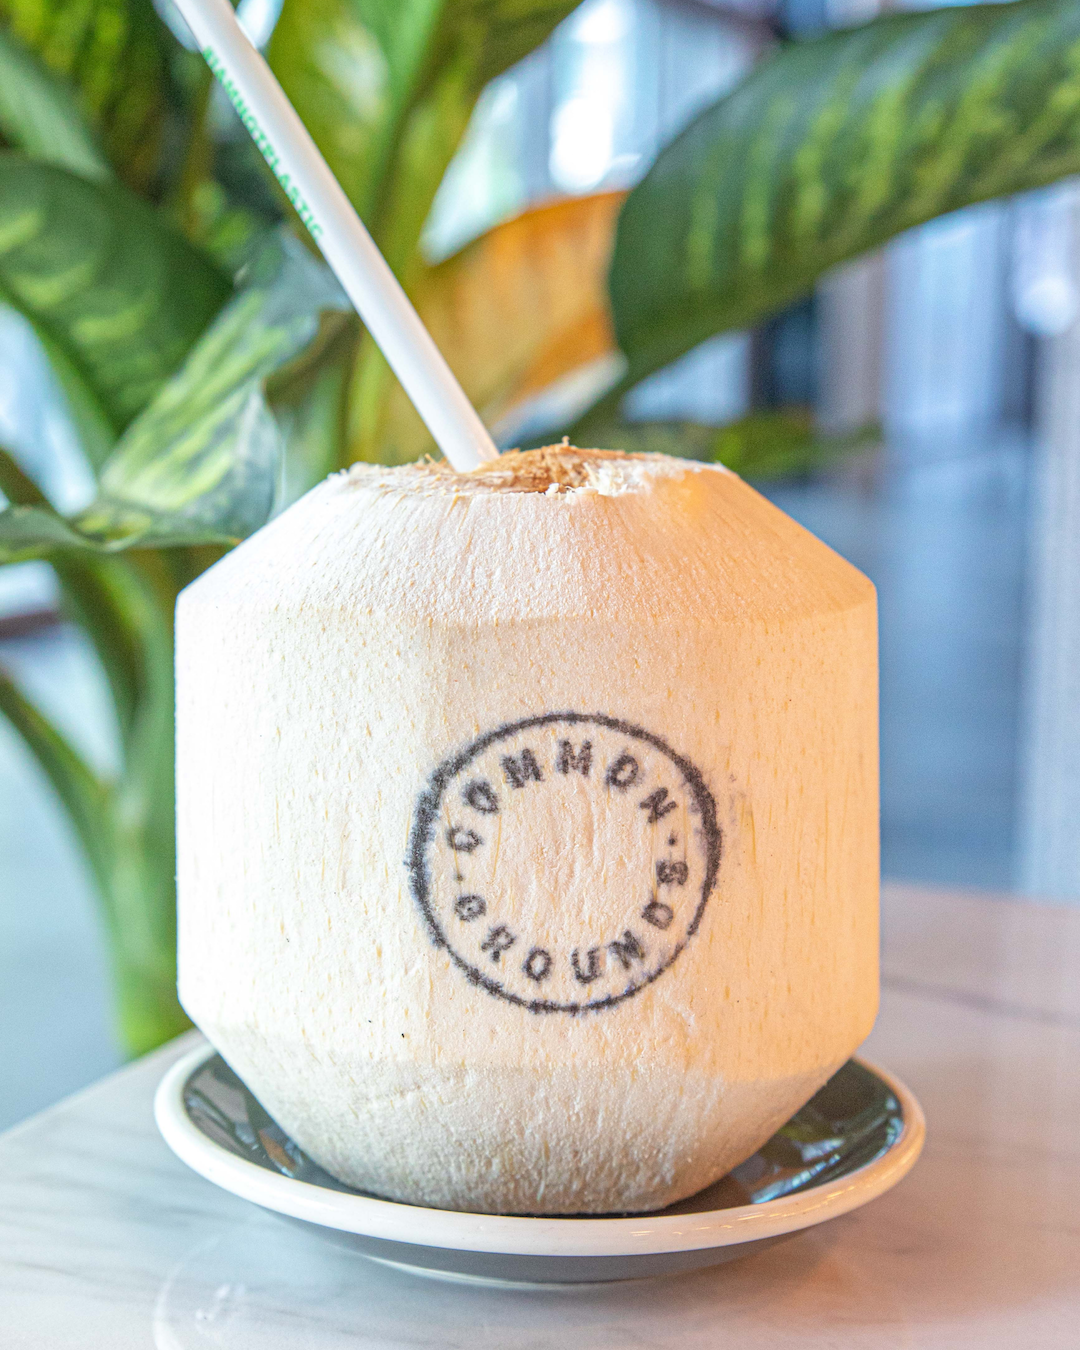 Whole Drinking Coconut